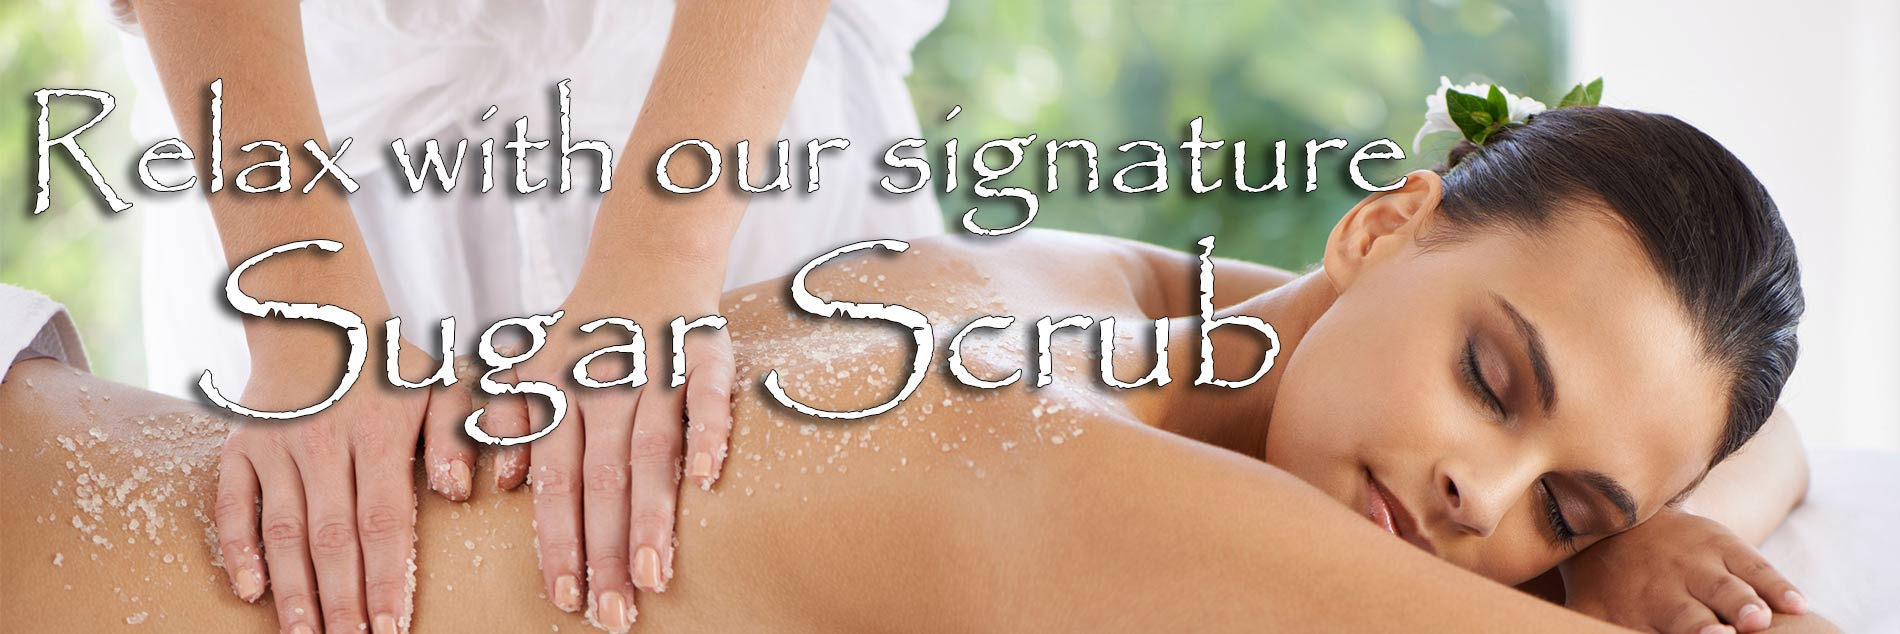 Relax with our signature Sugar Scrub